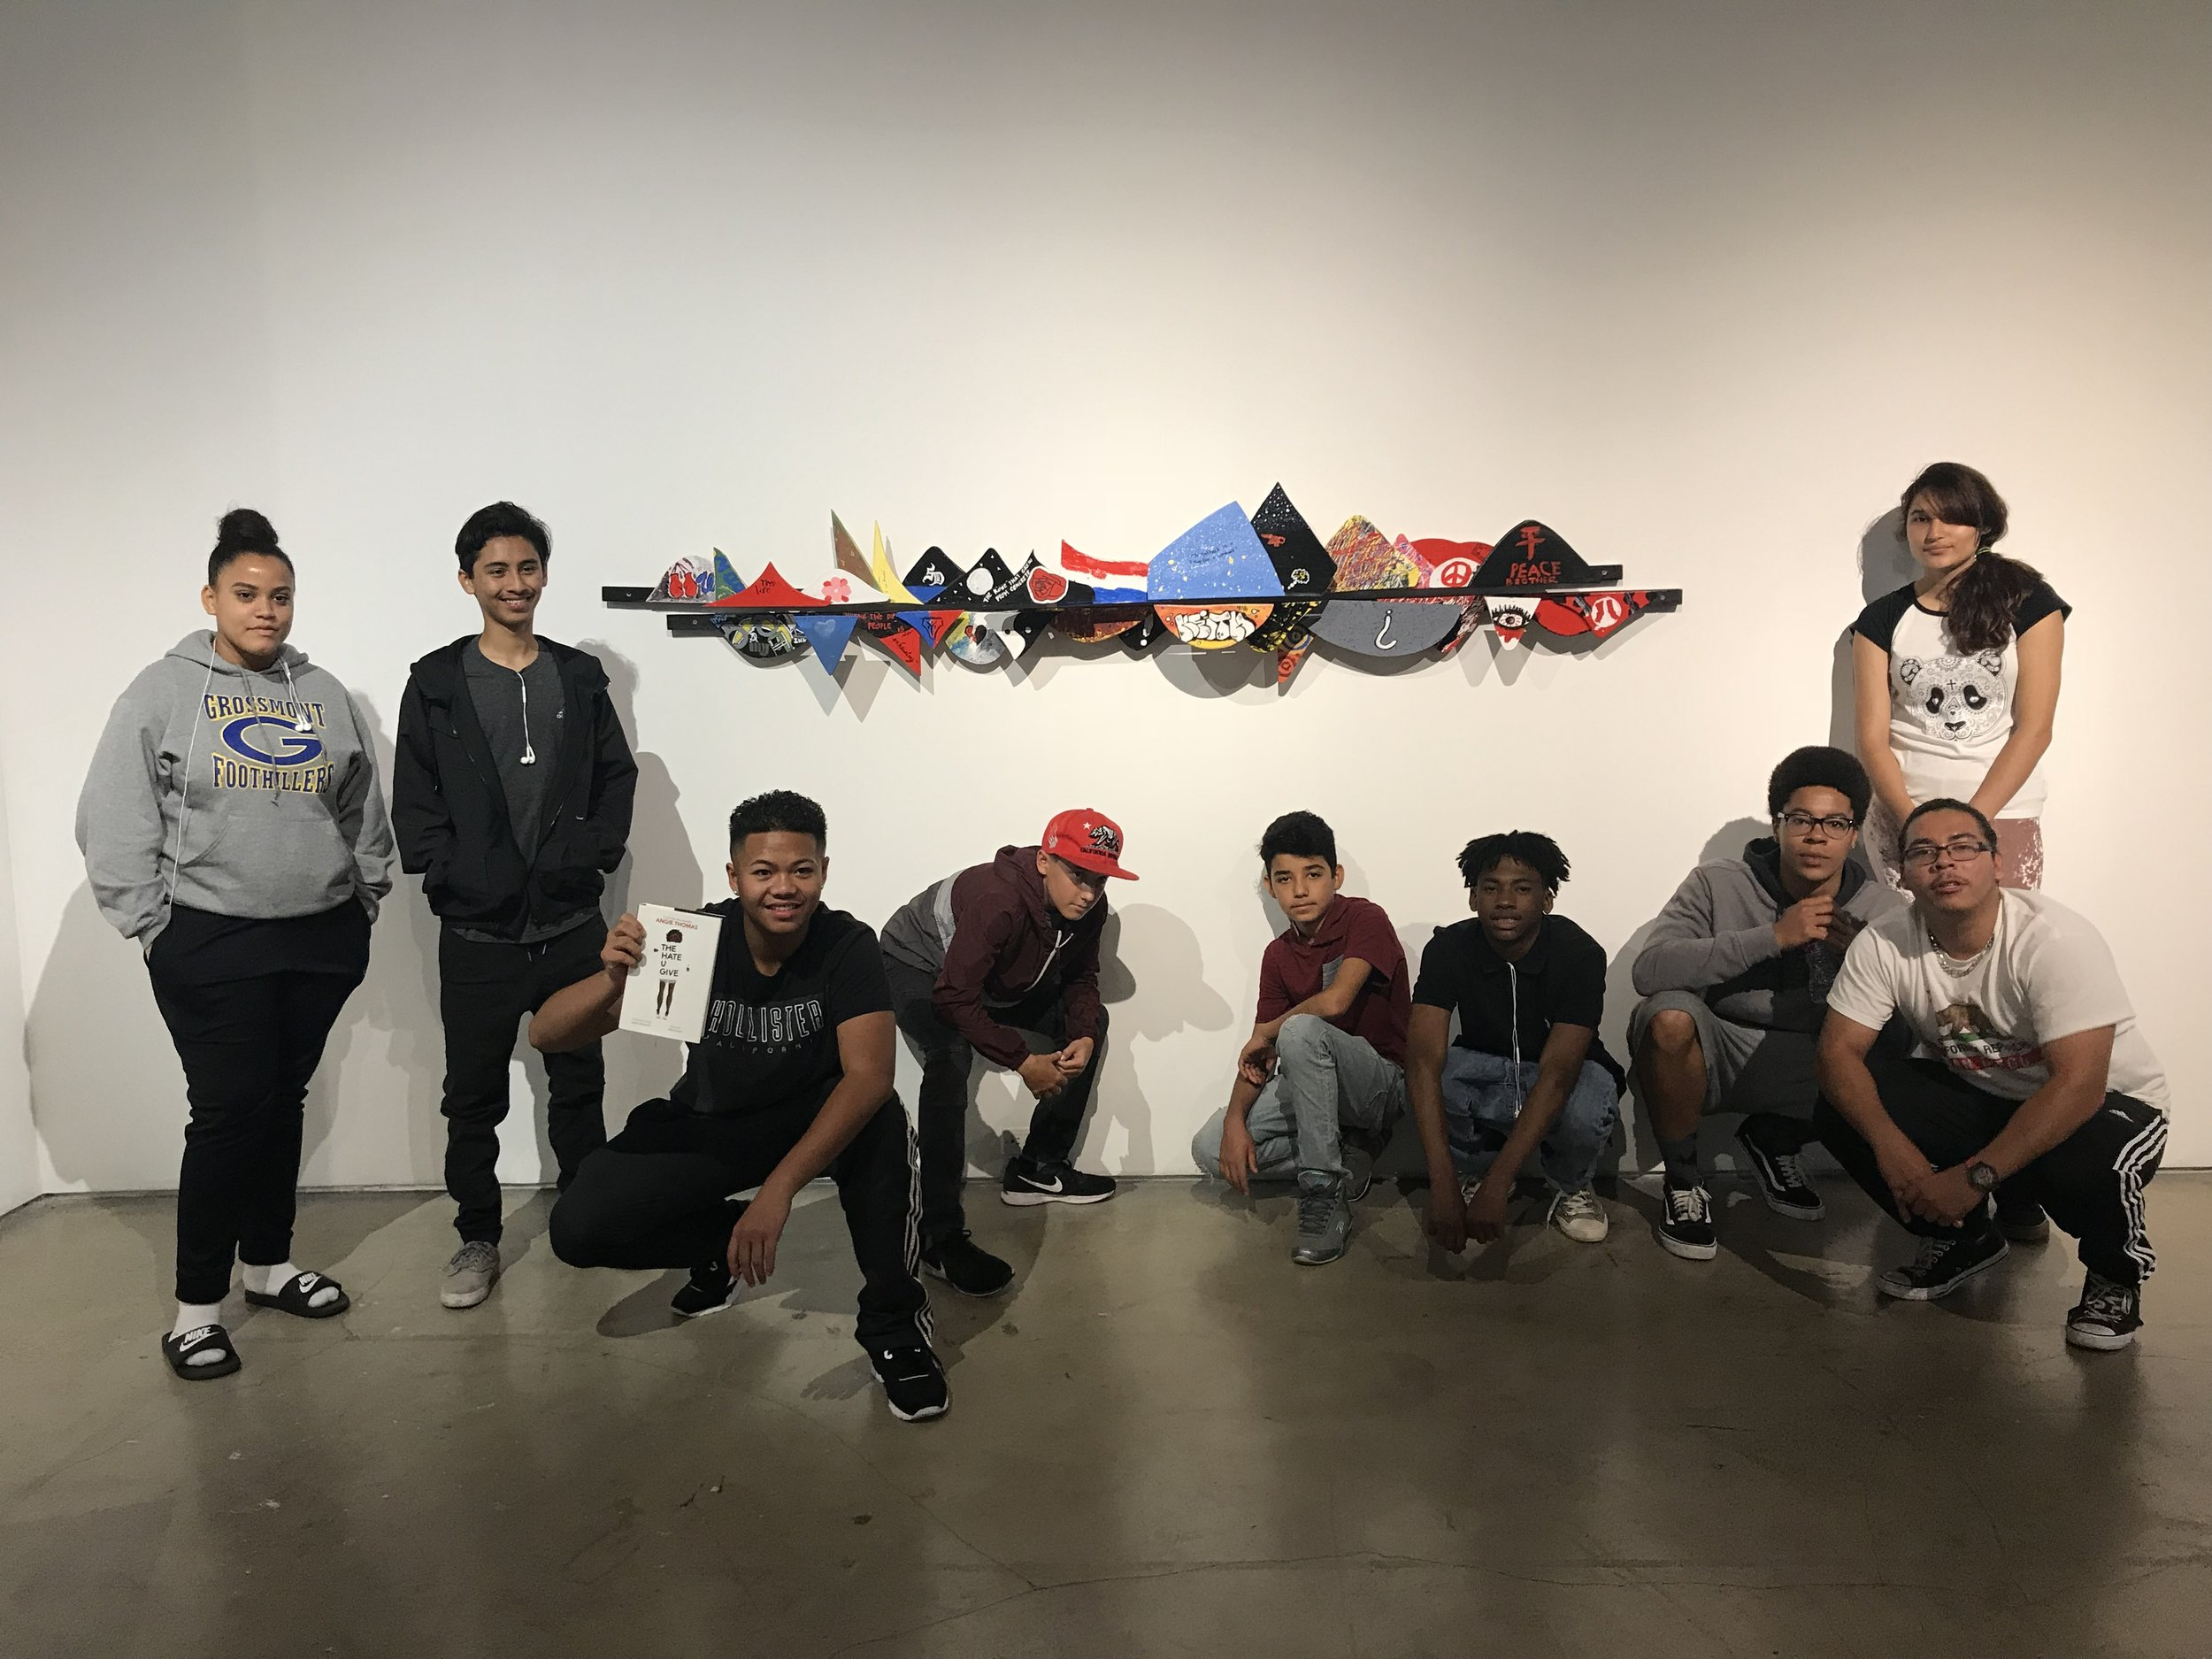 An image of our students from La Mesa Community School posed in front of their sculpture. One of the students is holding up a copy of the book, The Hate U Give.